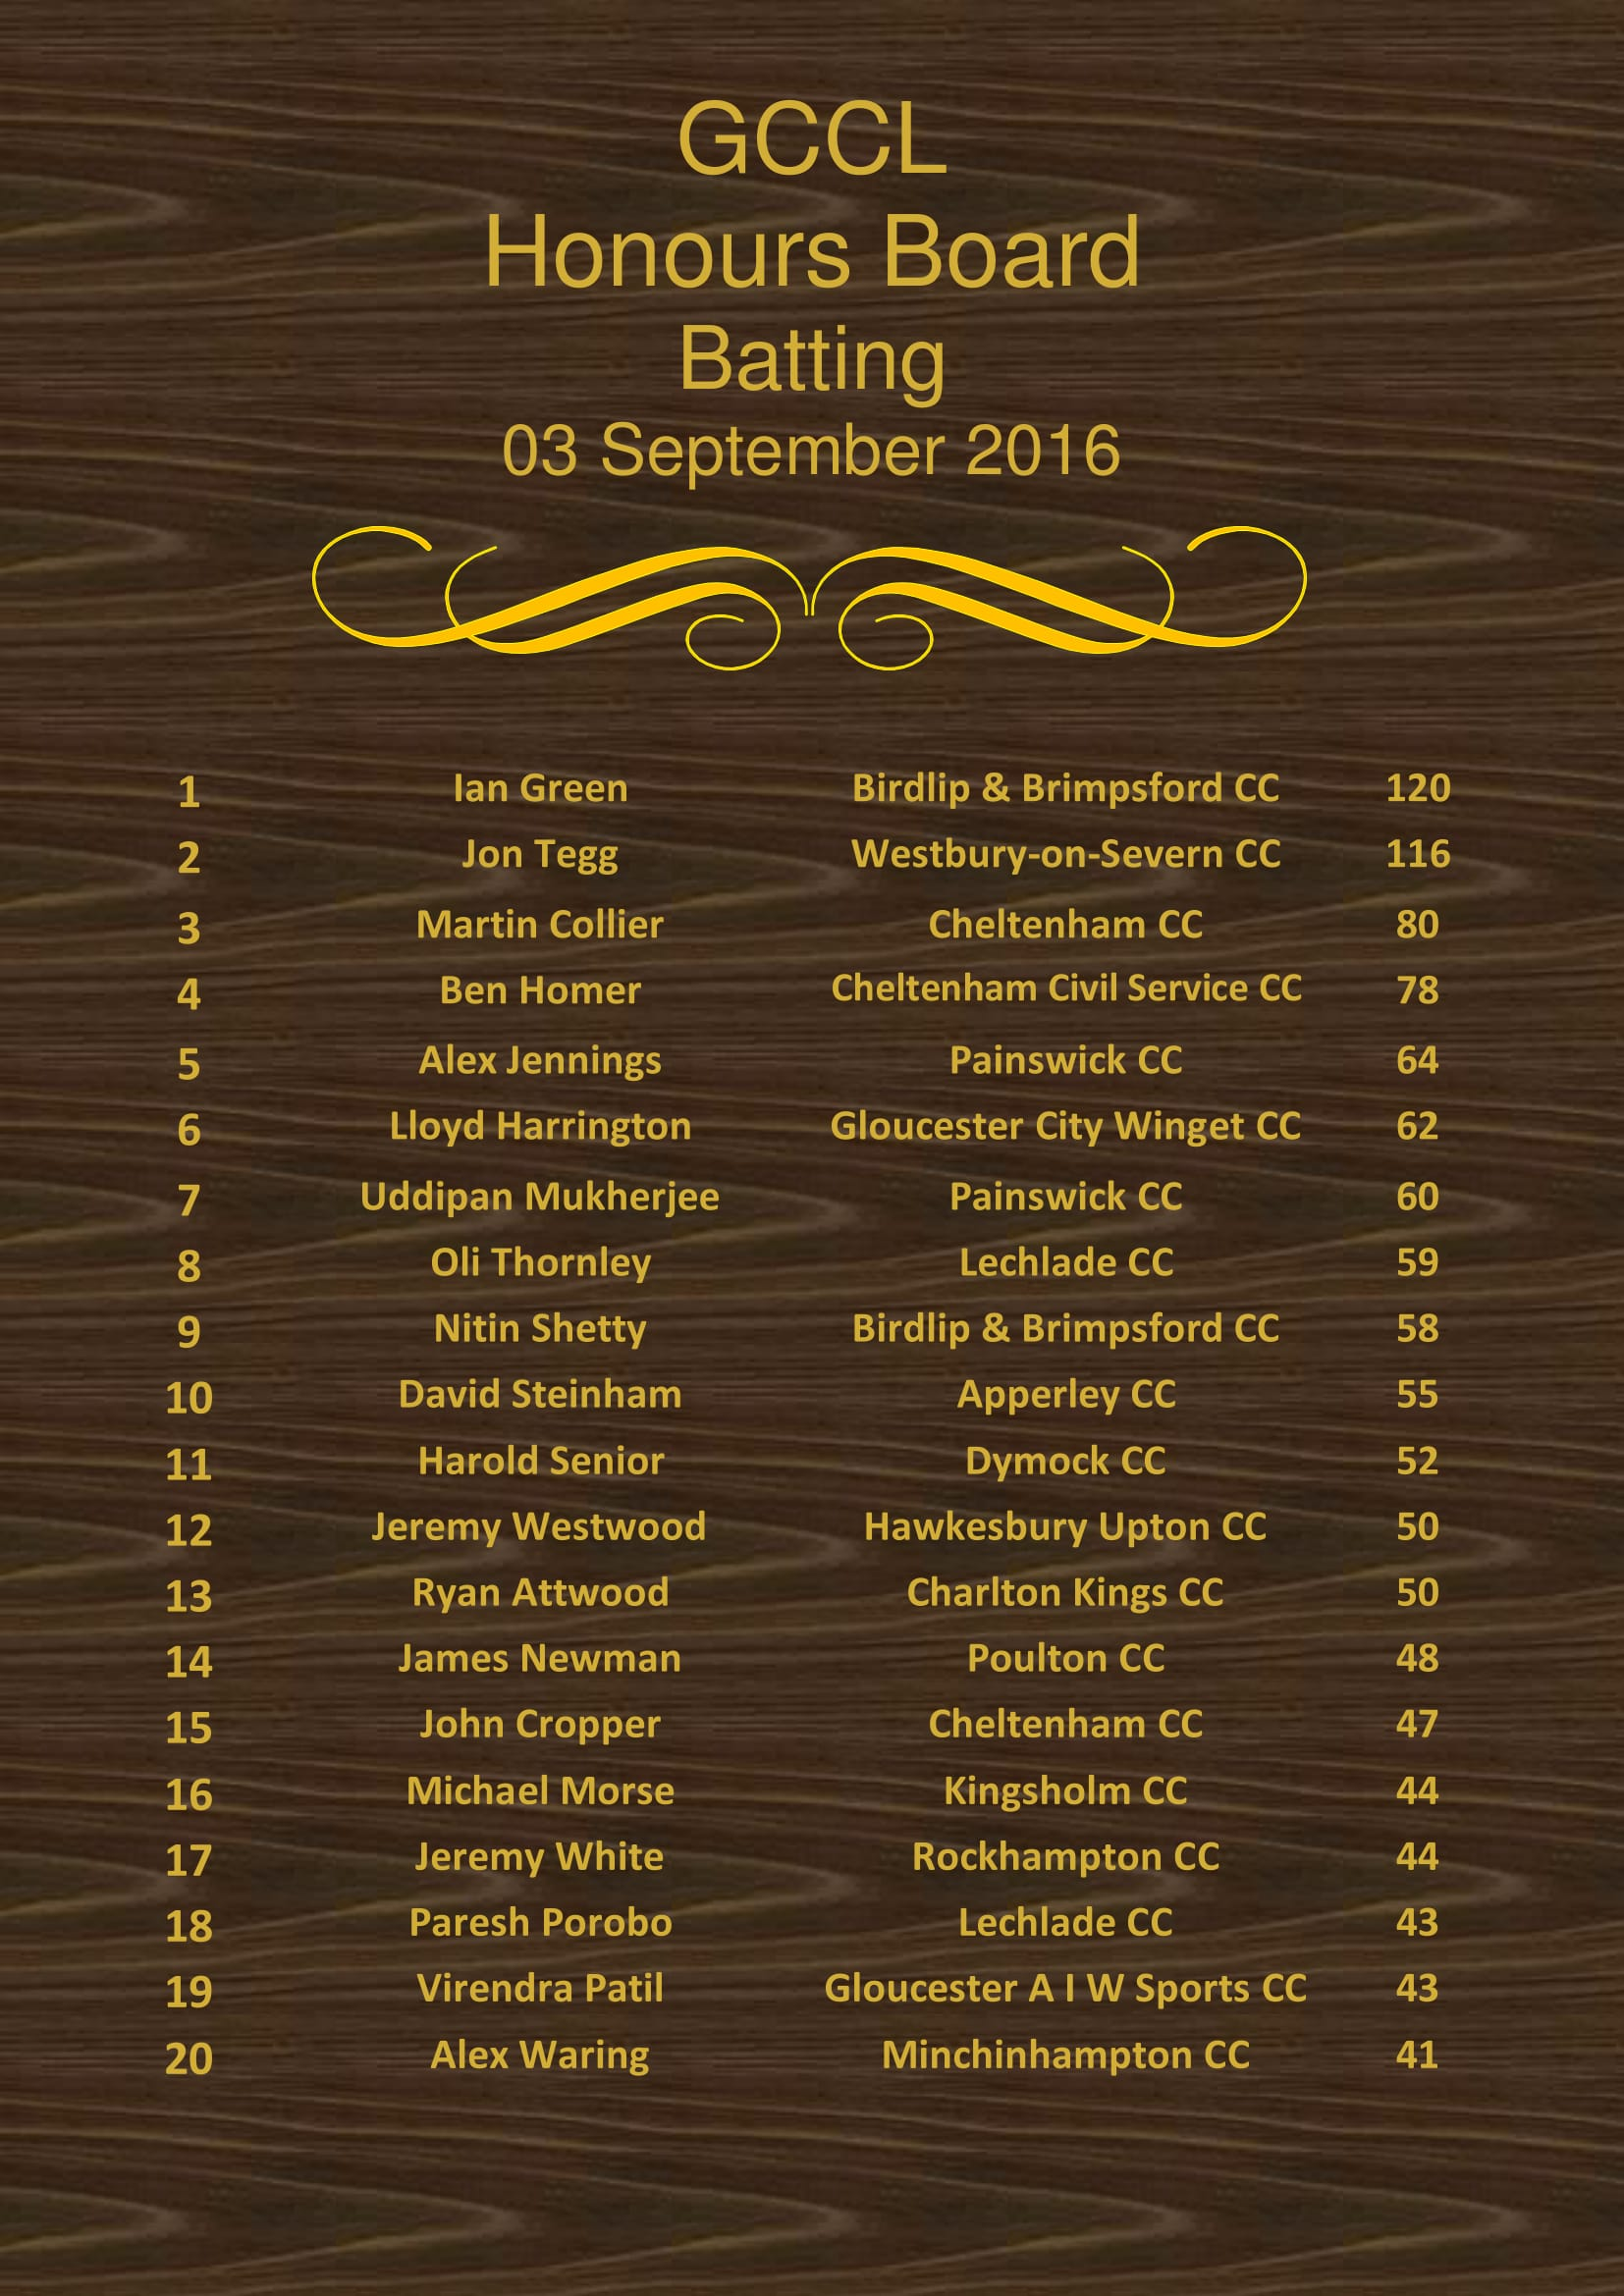 Batting Honours Board